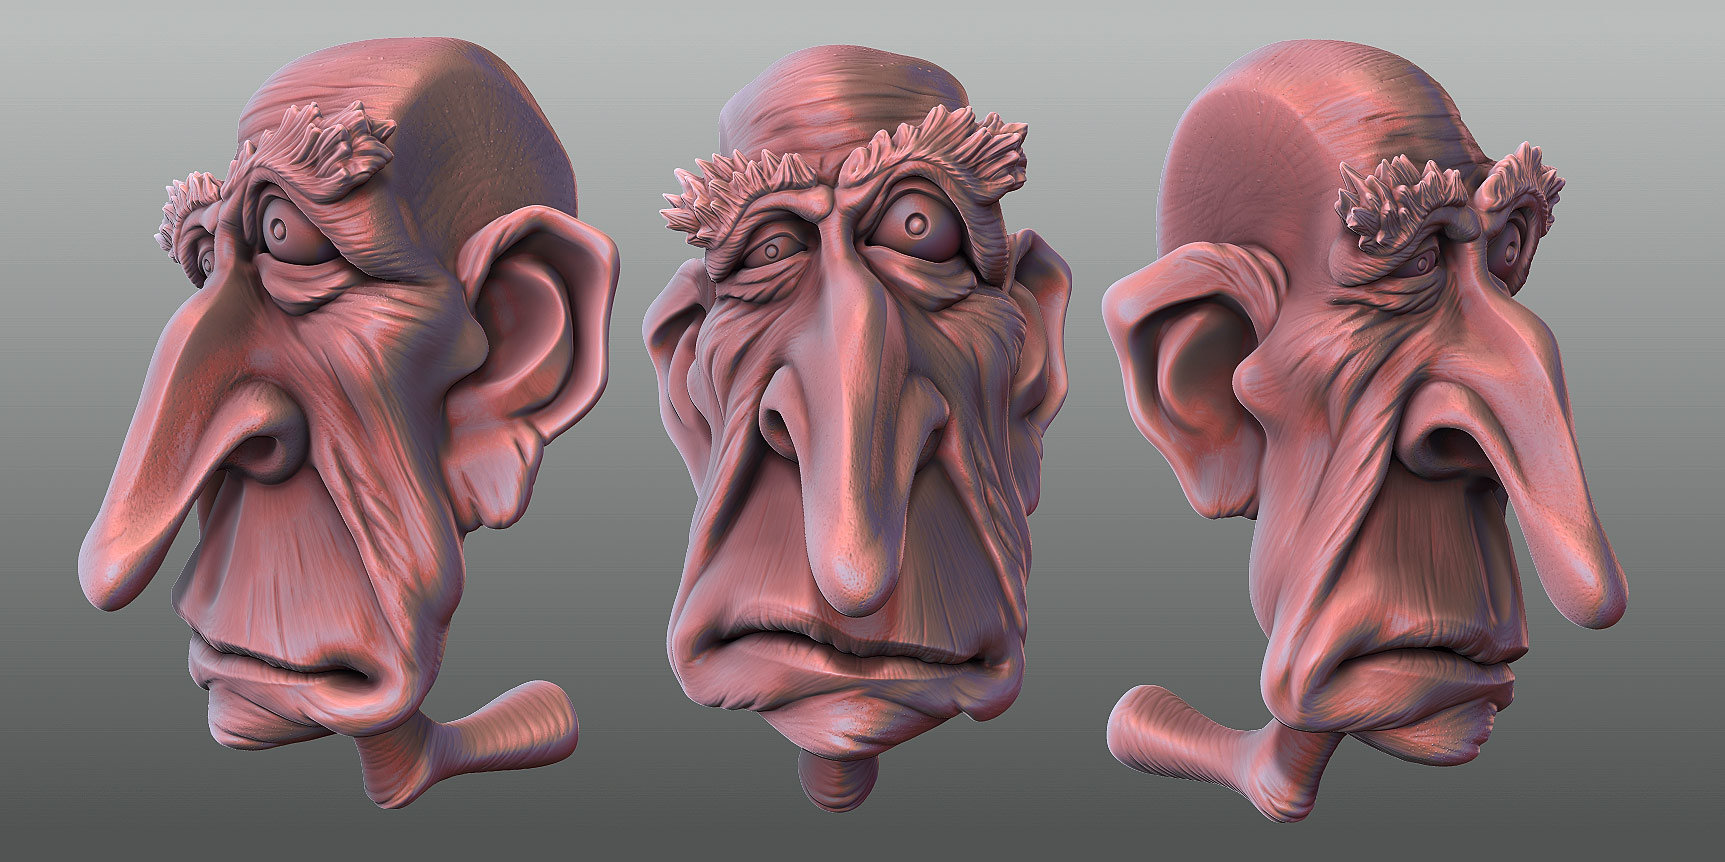 Oleg memukhin old spiderman head by monkibase d32054p